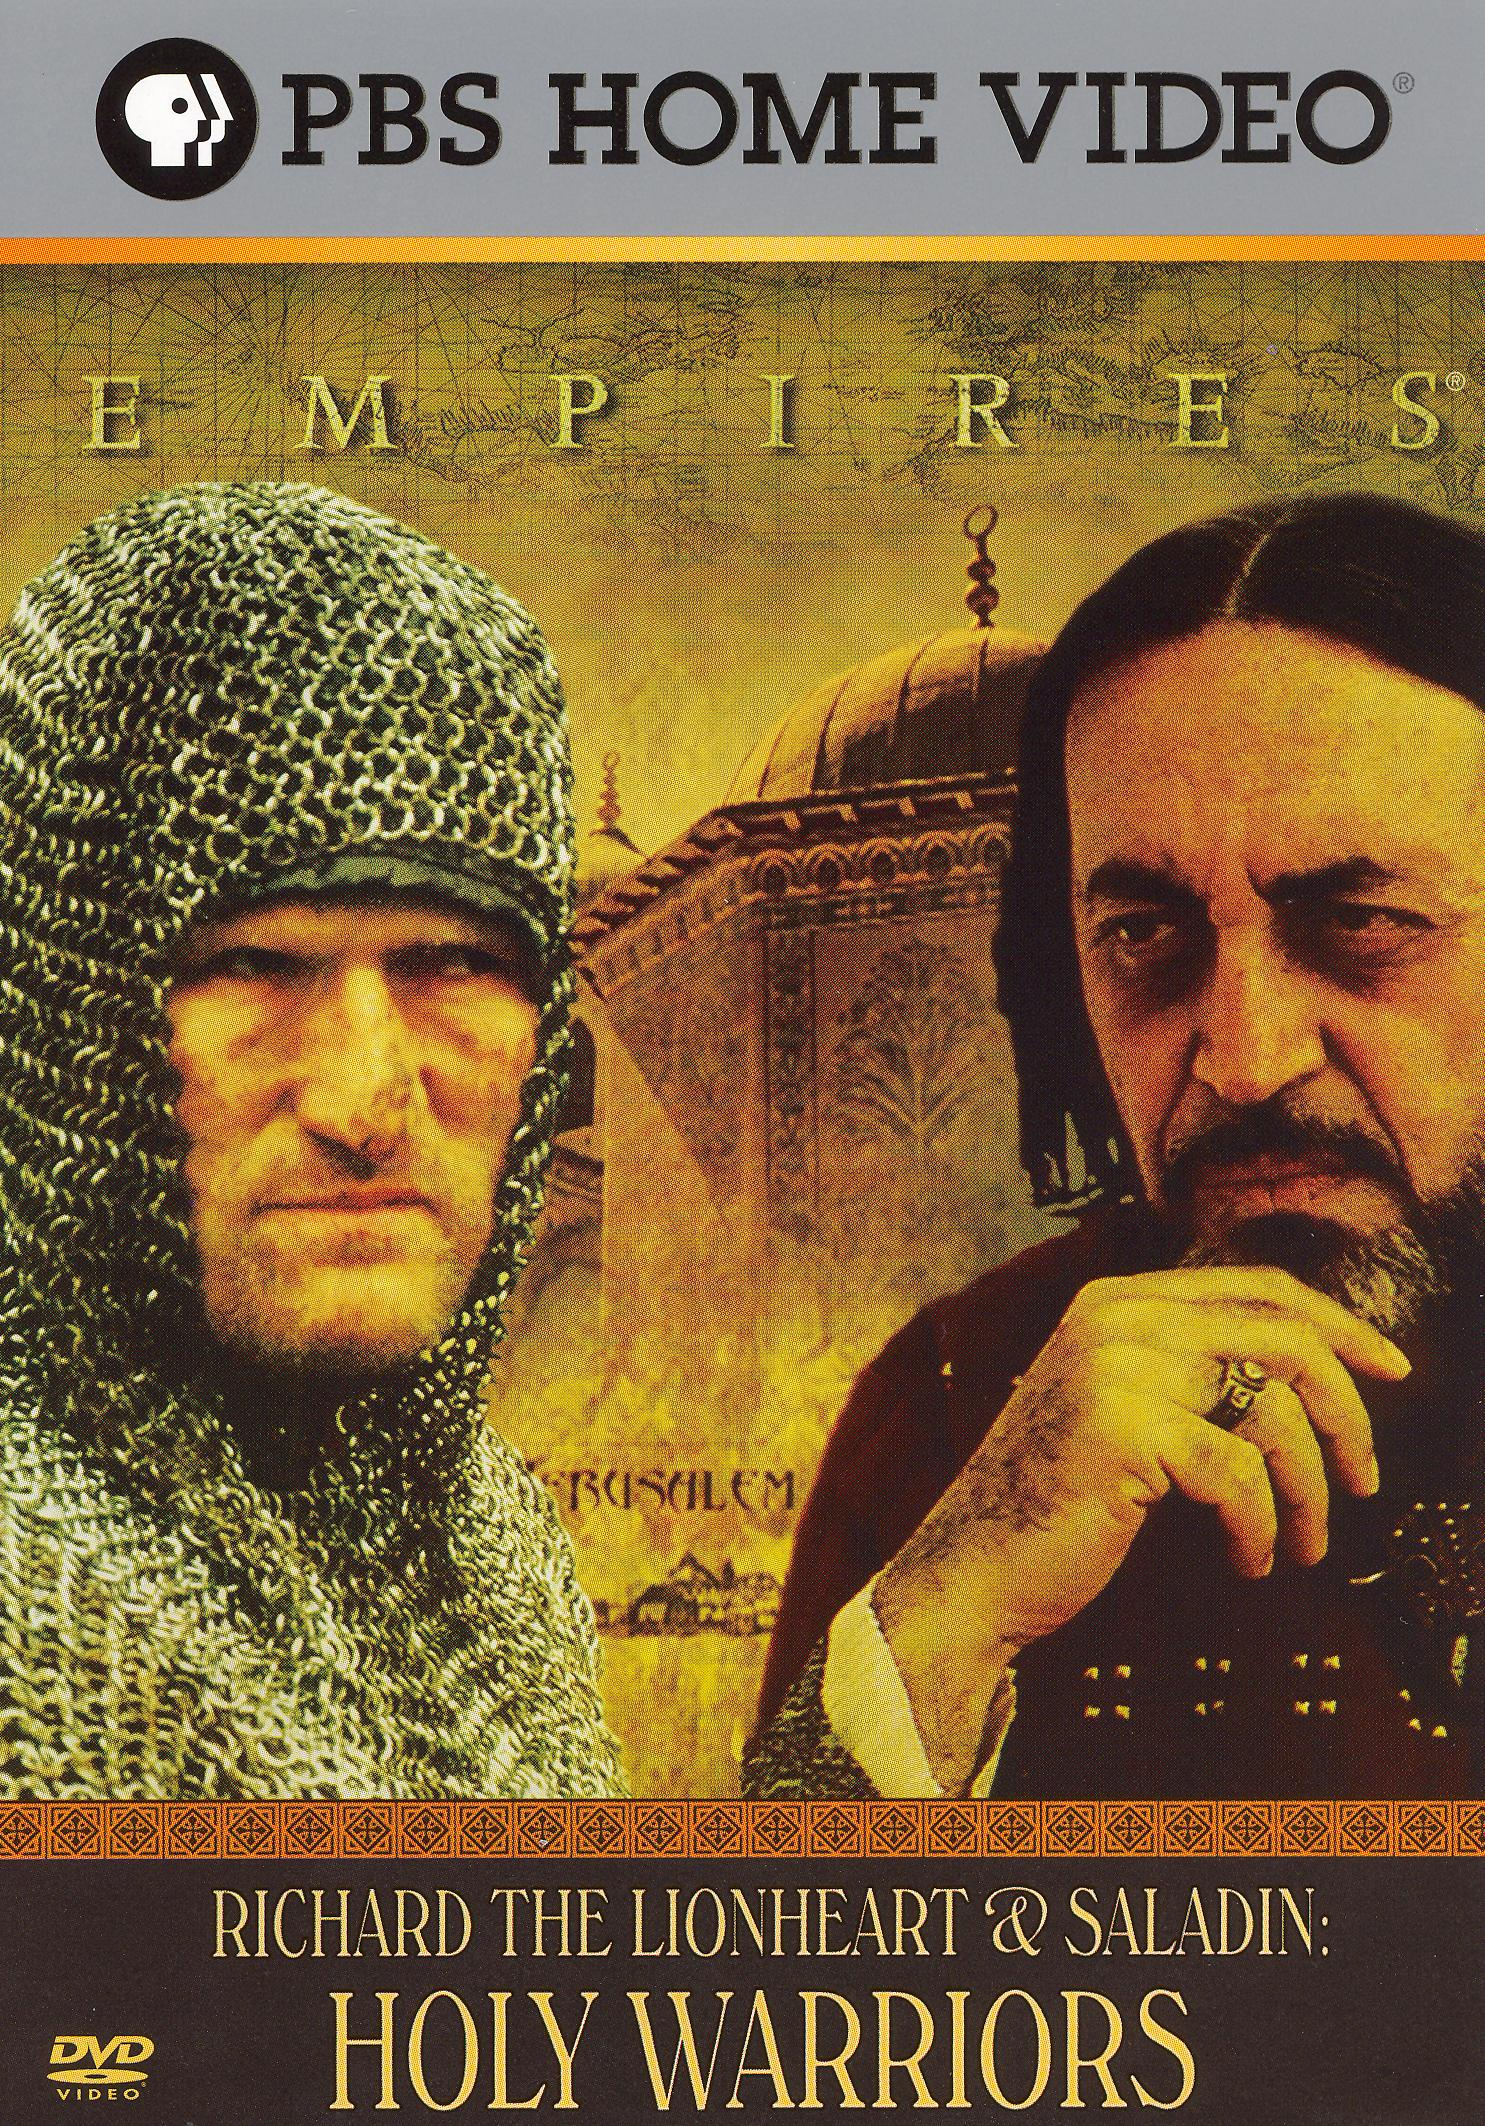 Richard the Lionheart & Saladin: Holy Warriors (2005)